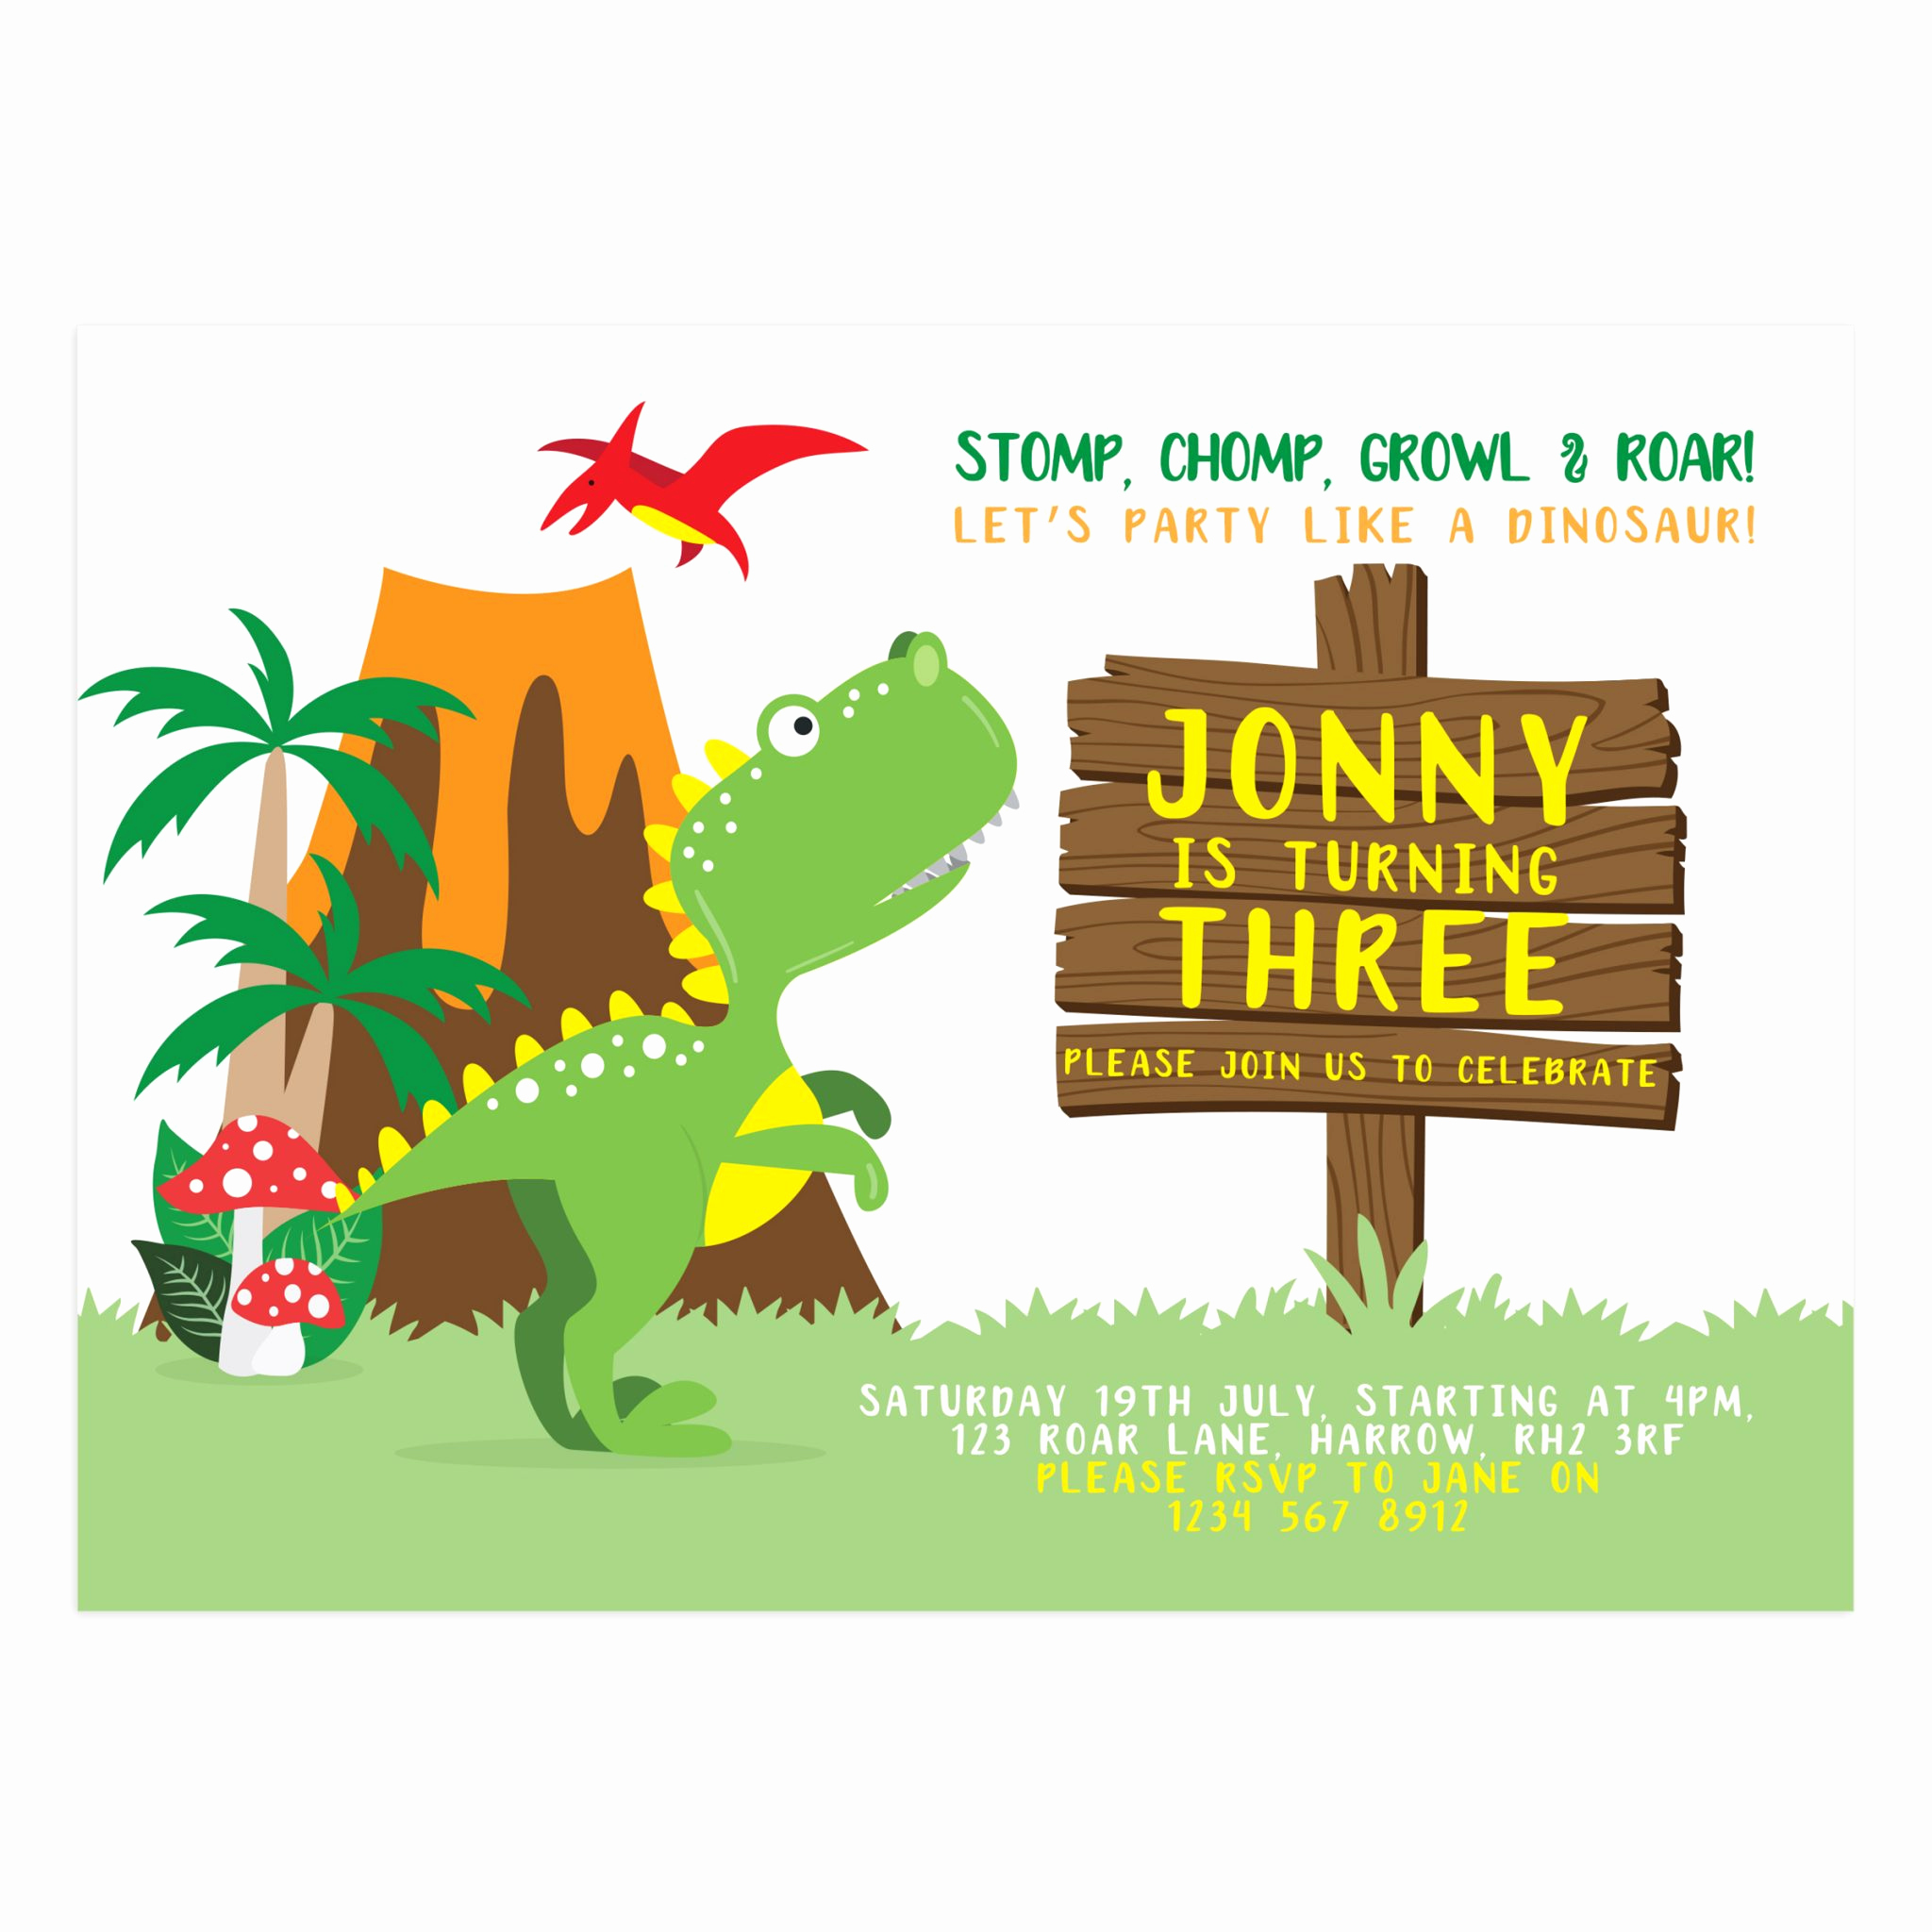 Dinosaur Birthday Invitation Template Awesome Party Like A Dinosaur